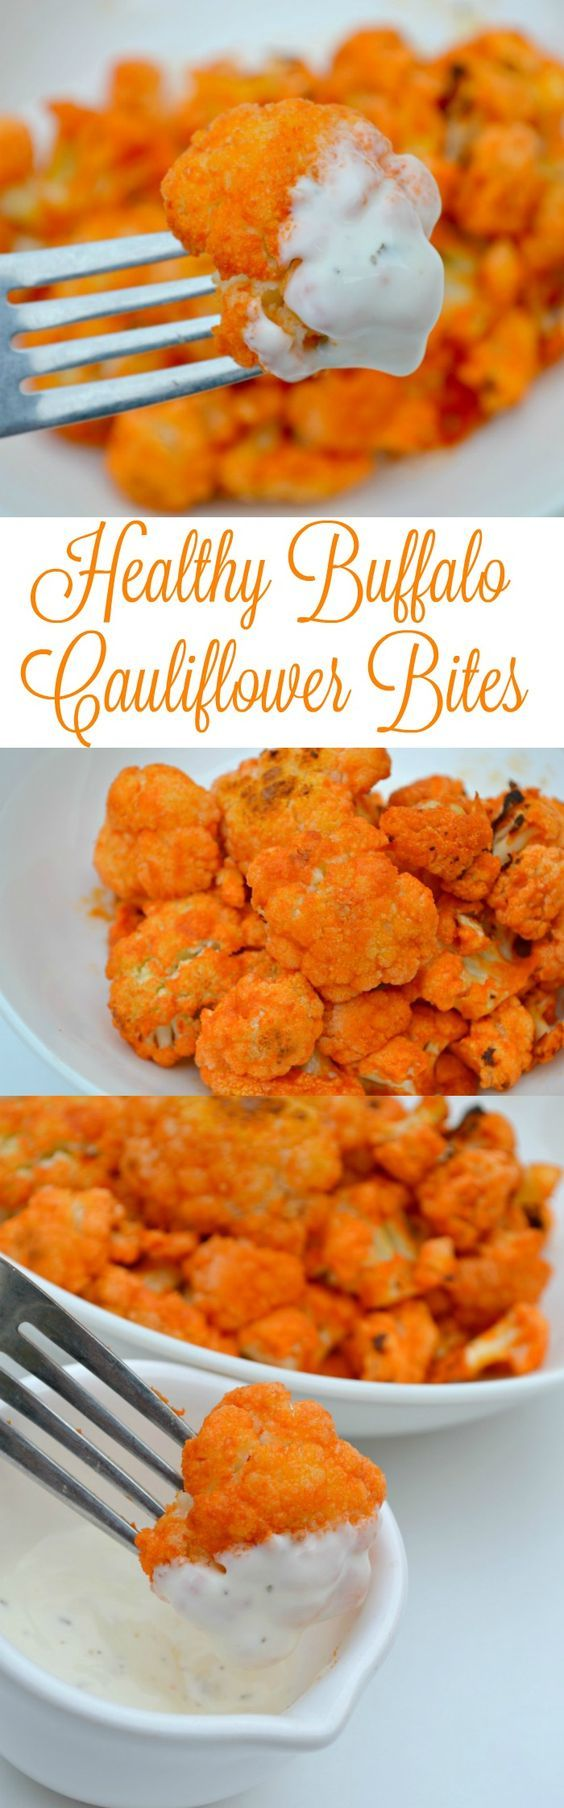 Healthy Buffalo Cauliflower Bites | Healthy Snack Alternatives For Every Craving | http://www.hercampus.com/health/food/healthy-snack-alternatives-every-craving